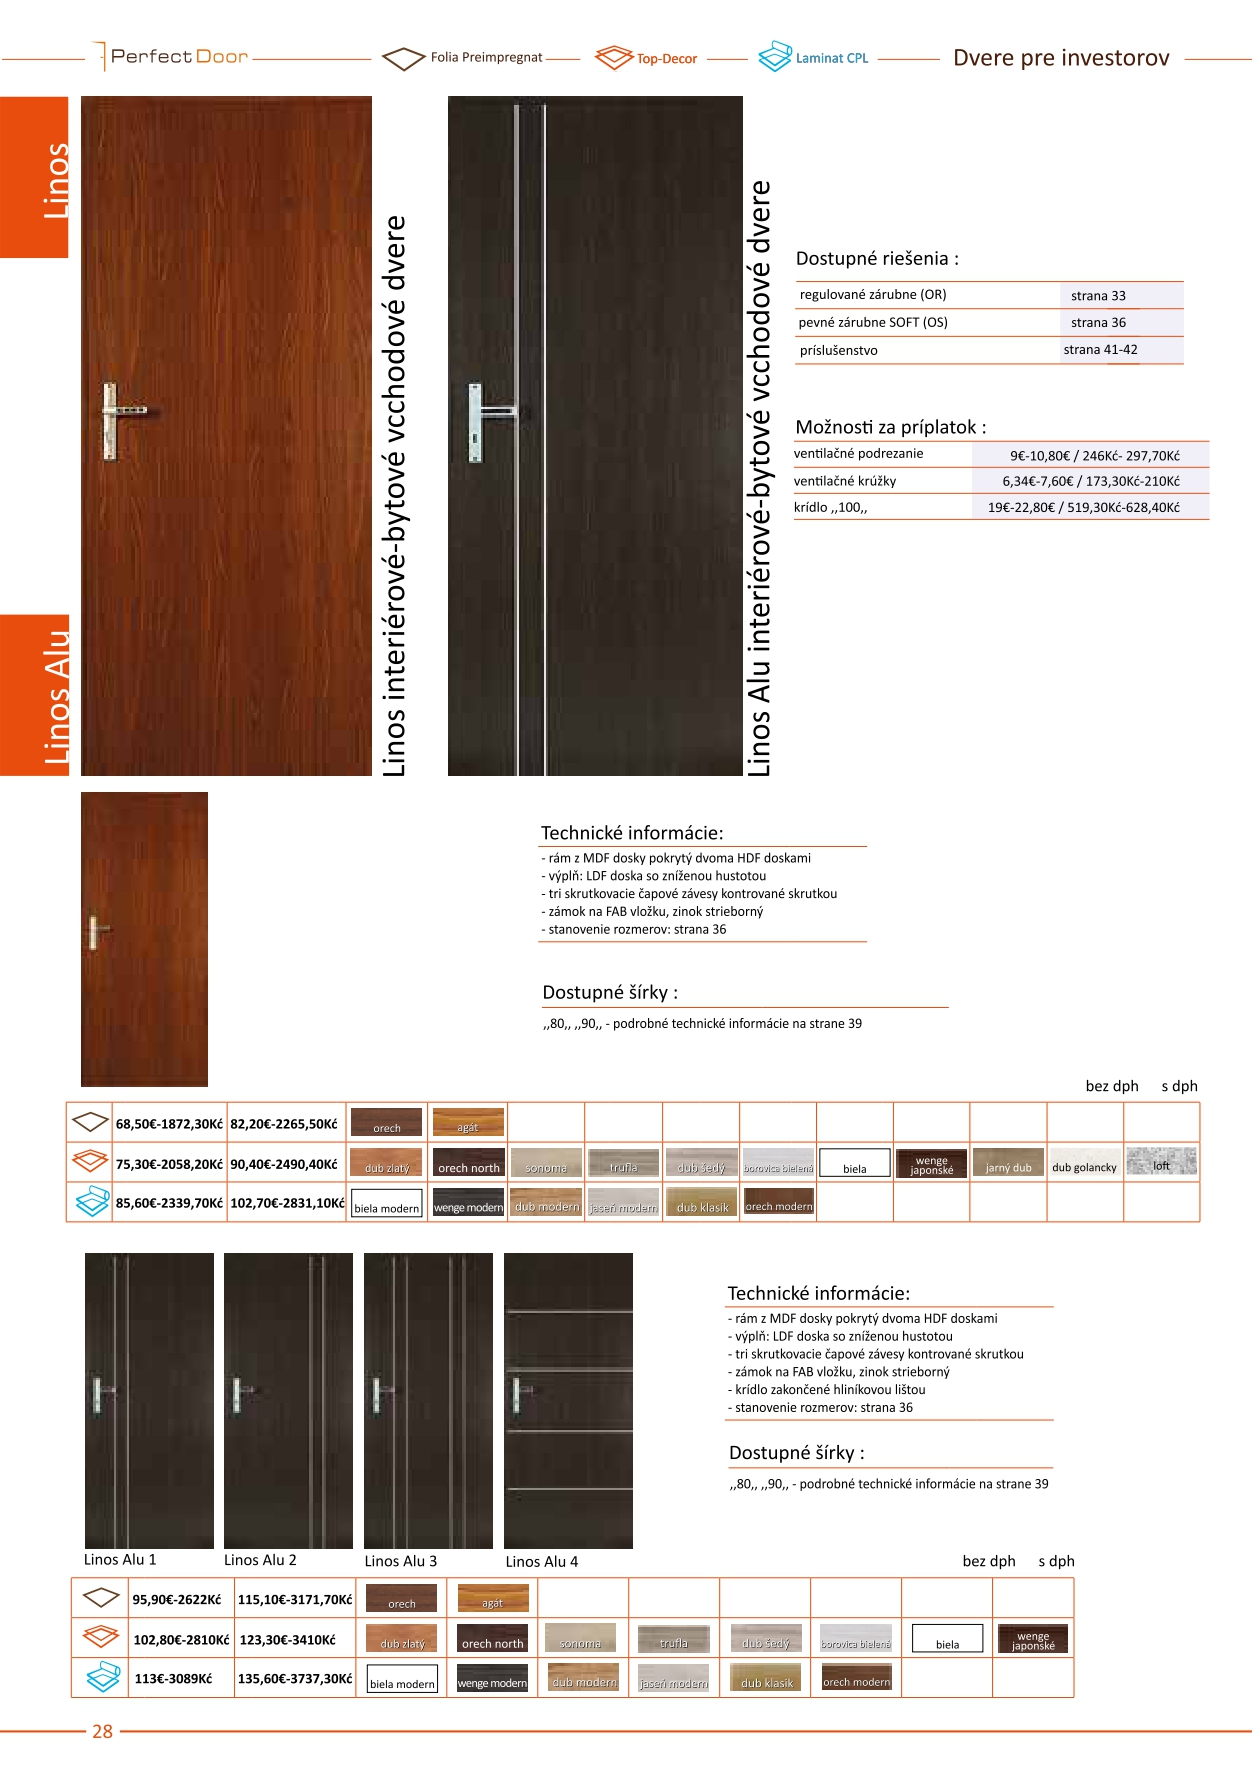 Perfectdoor katalog  1 2019 pages-to-jpg-0028